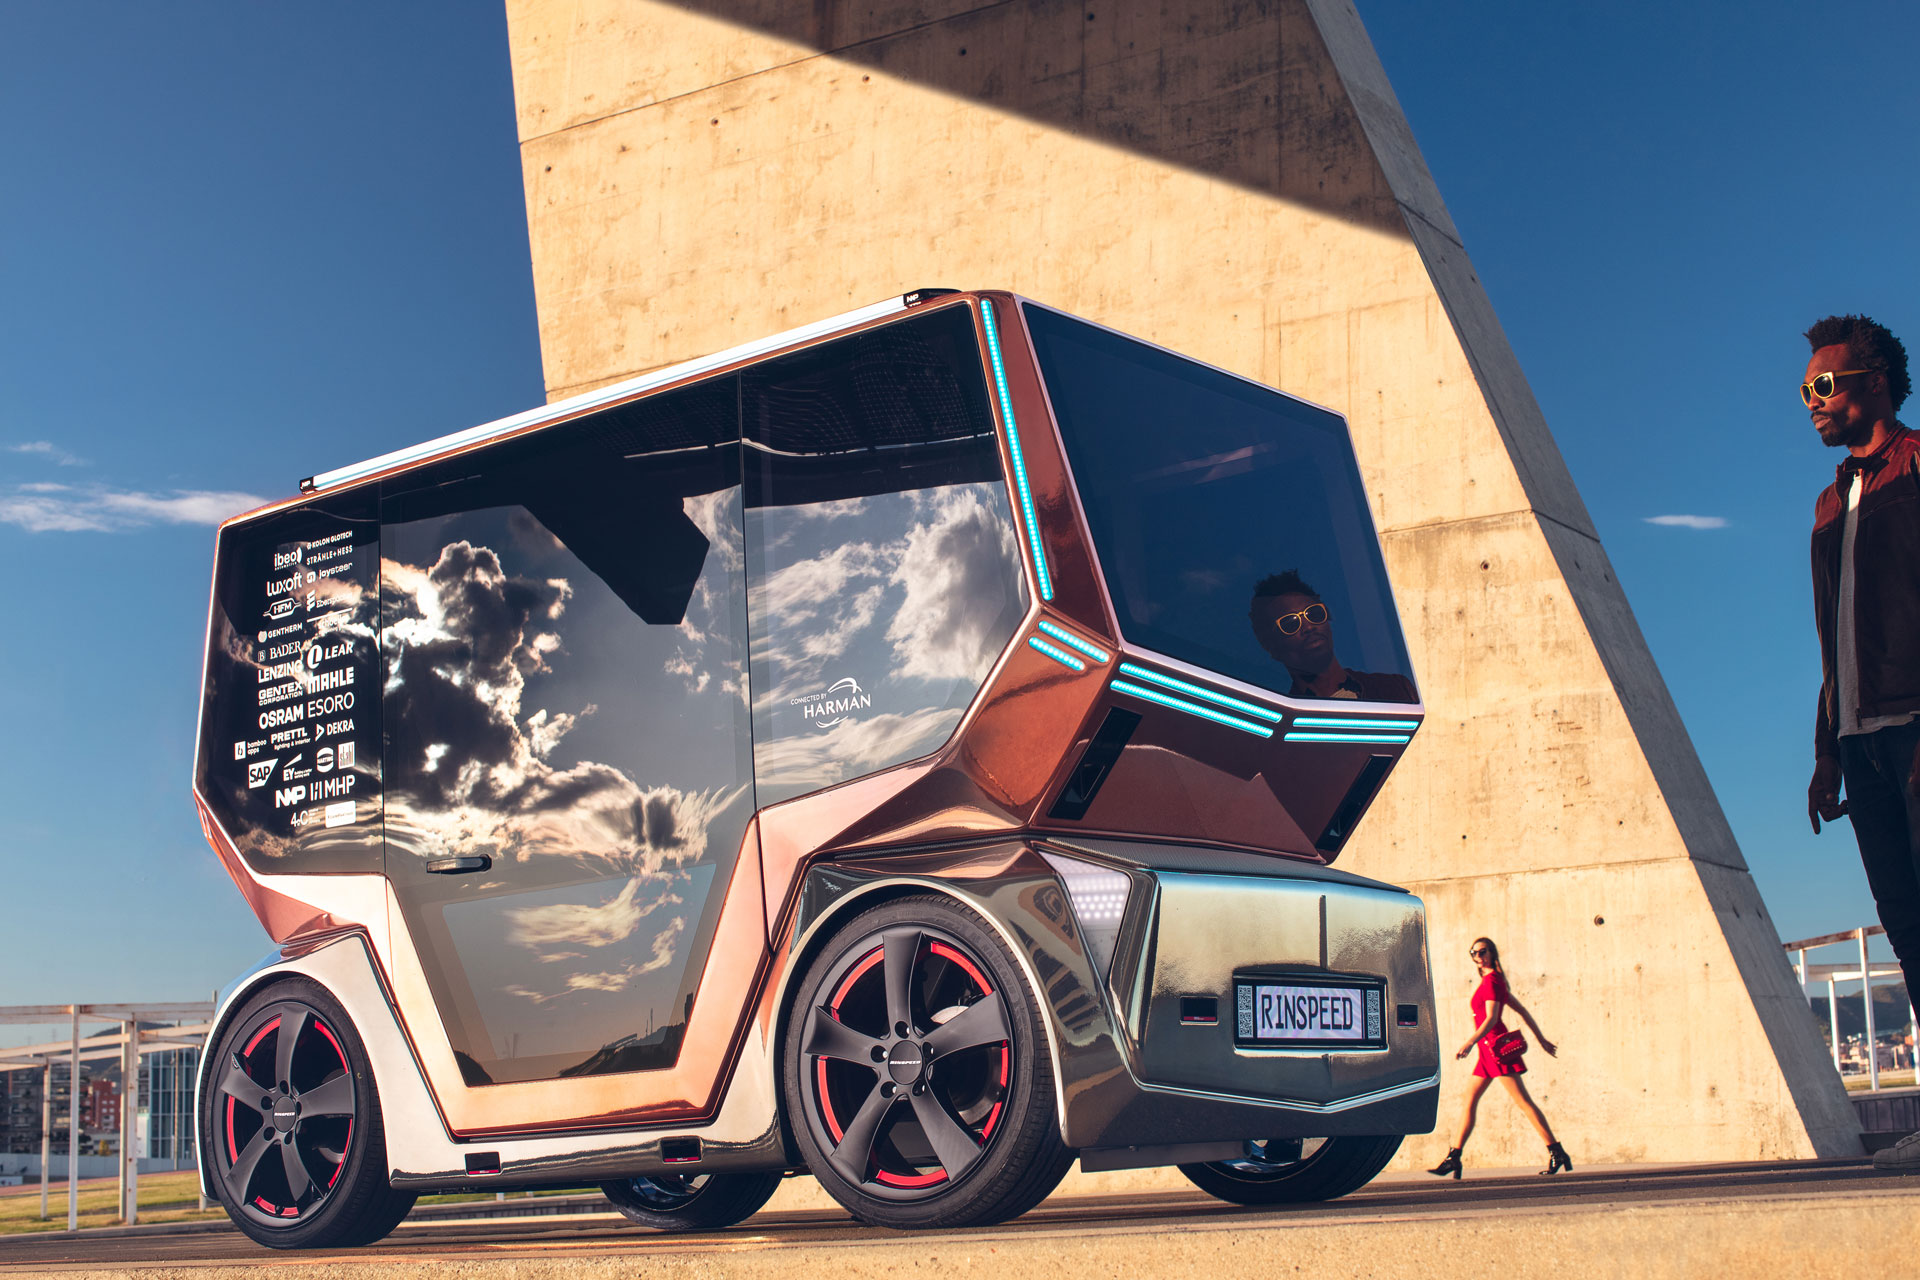 Modular driverless car has swappable bodies for deliveries, taxi services and beyond